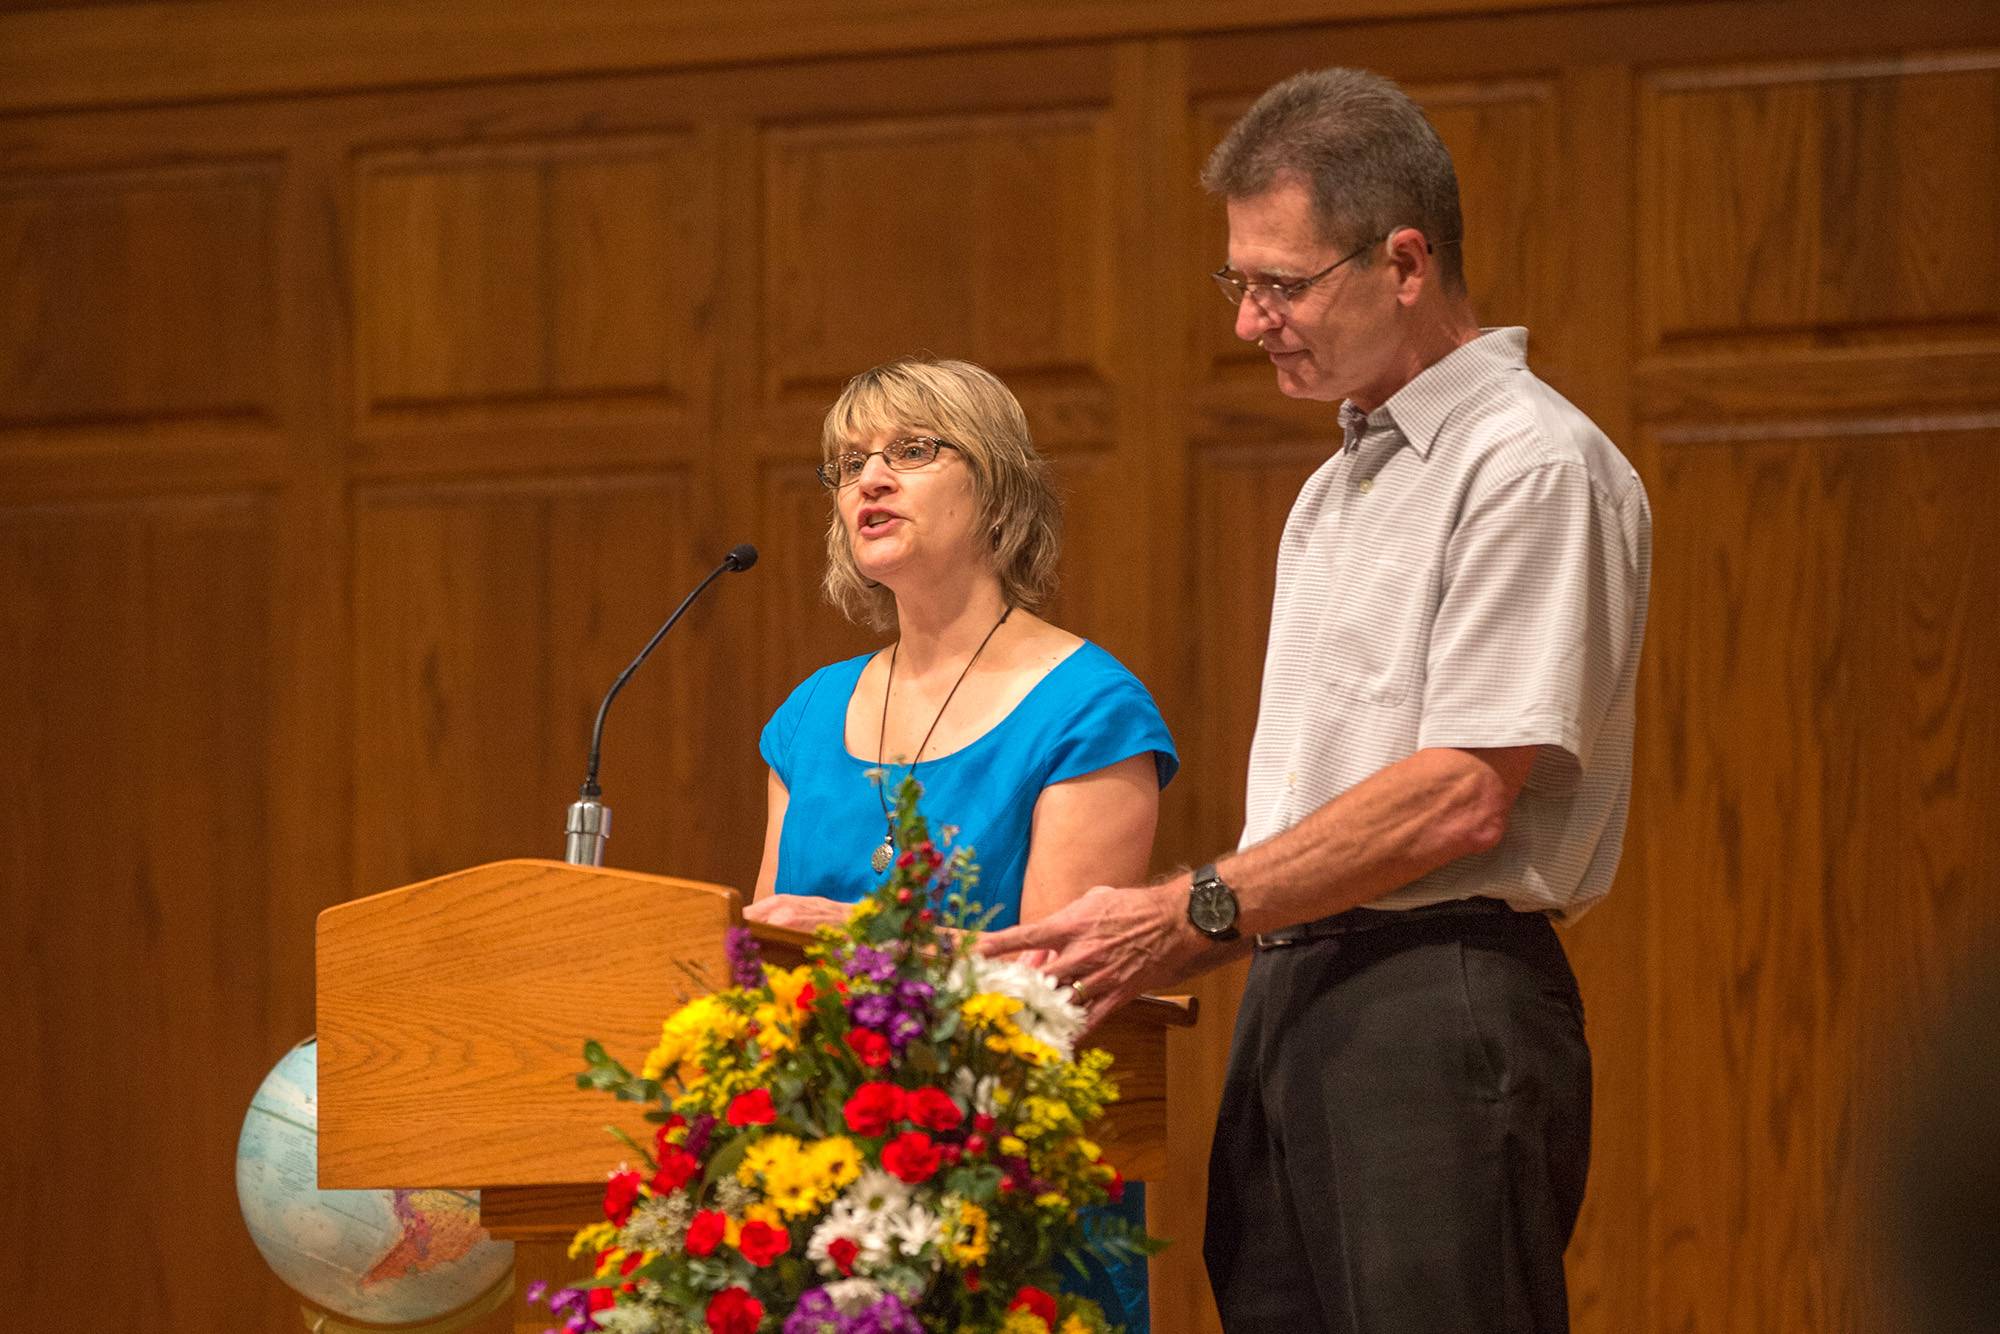 Kathy Keener Shantz and Stan Shantz preach at the Homecoming Weekend Worship Service.